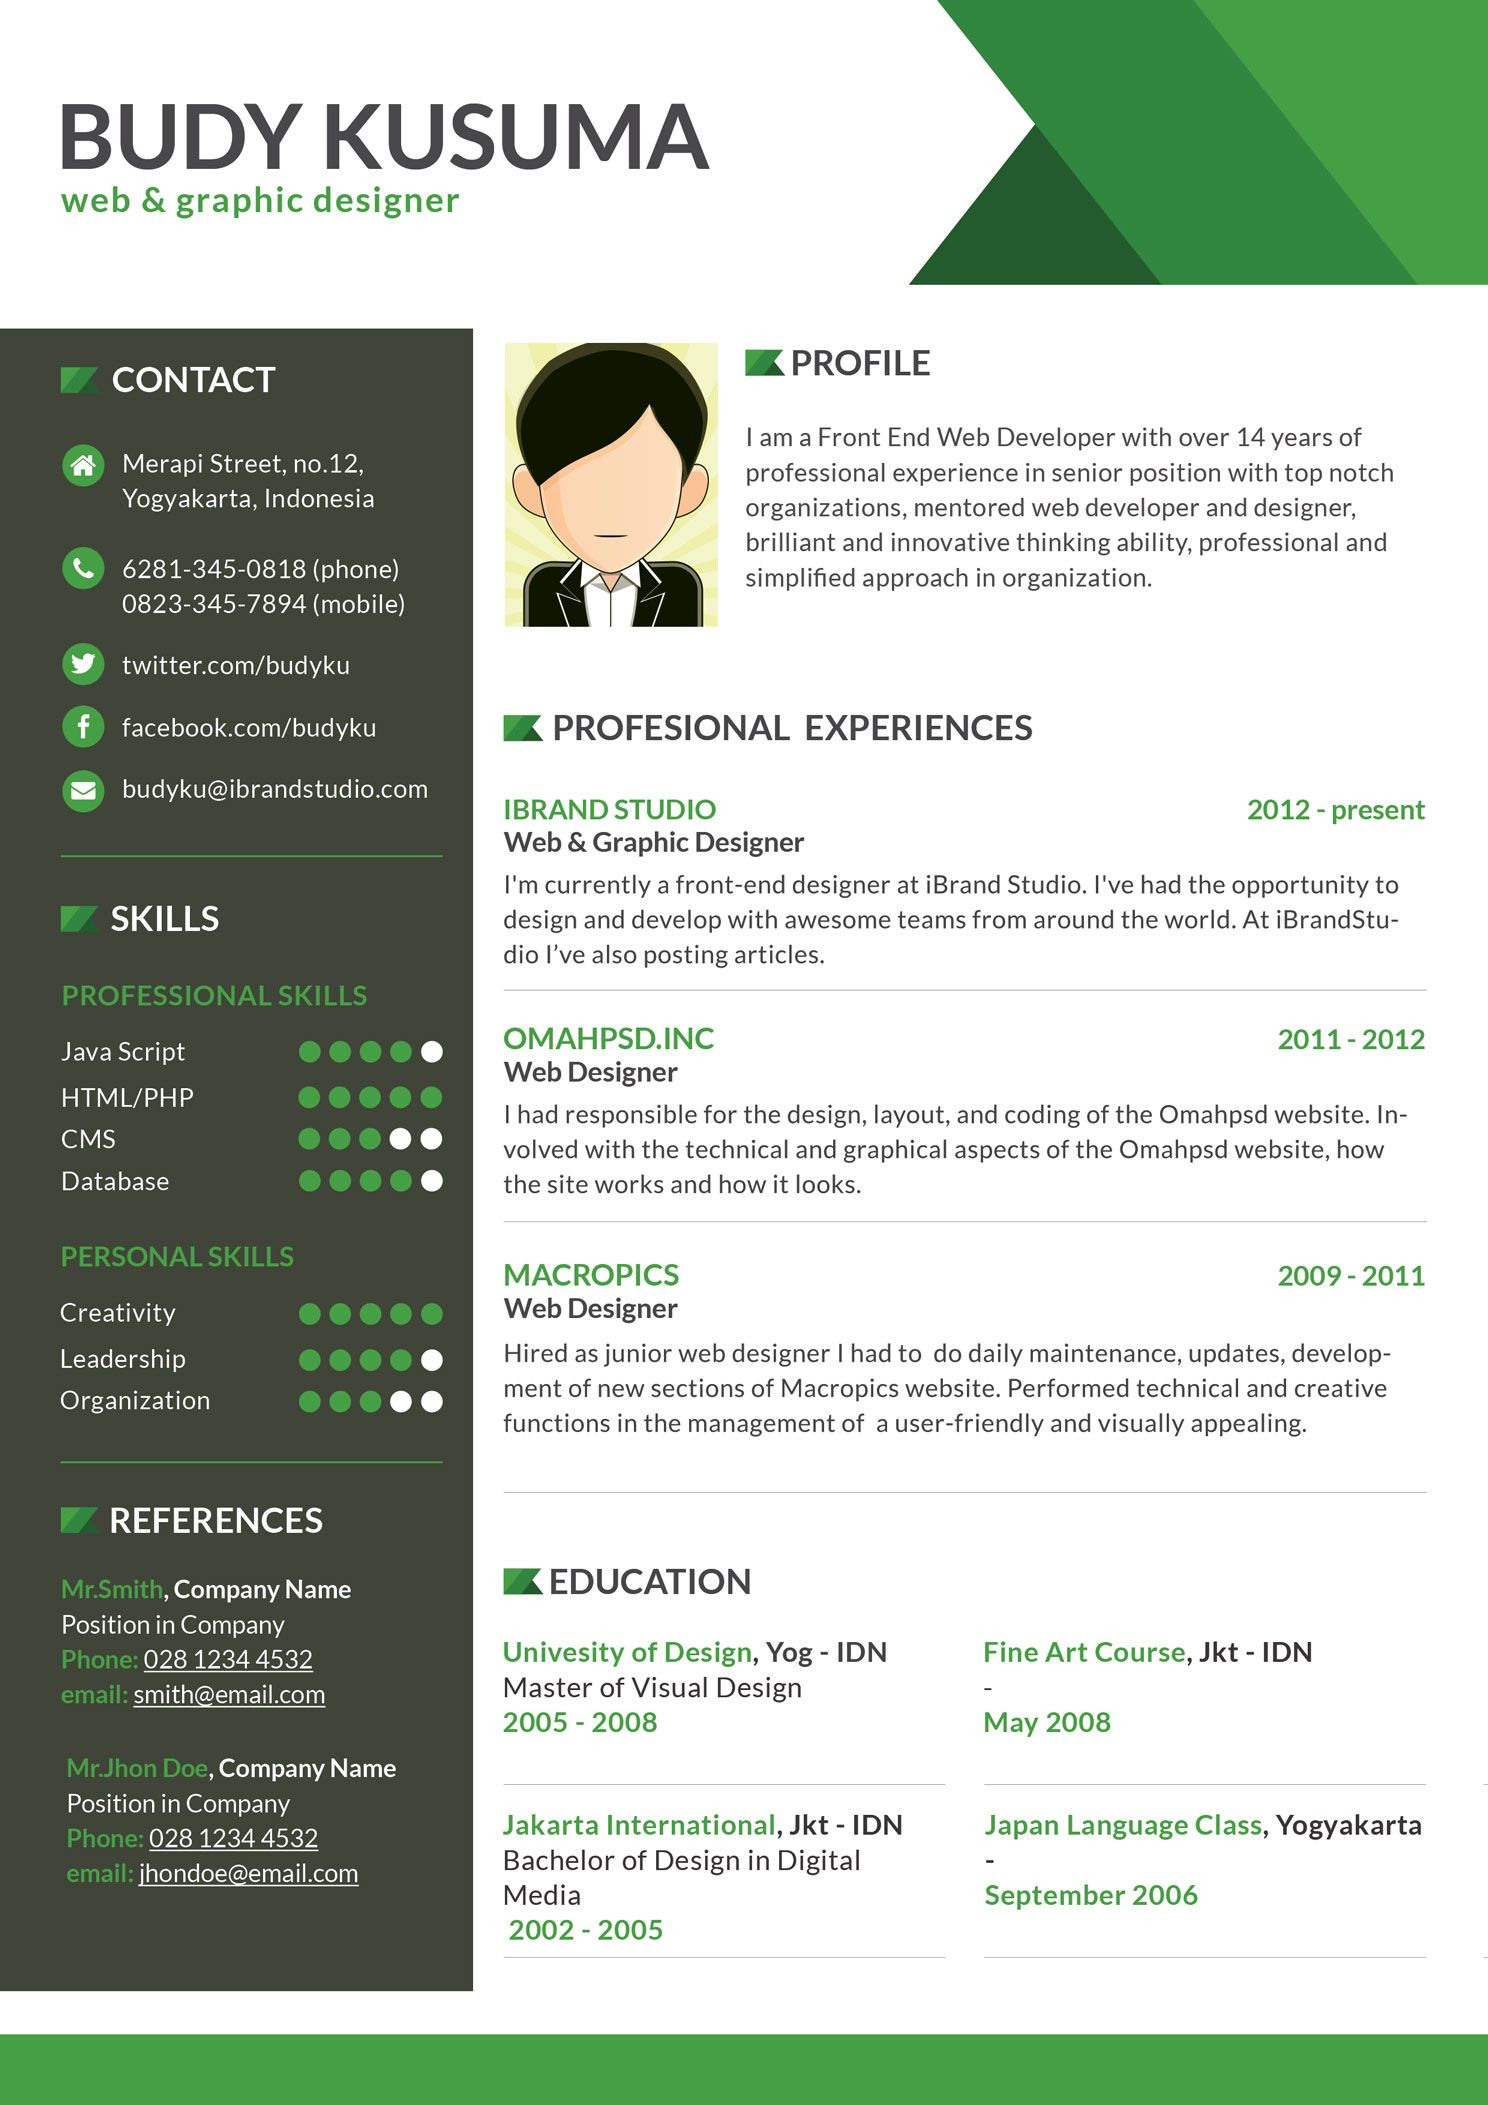 Best 10 Creative Resume Design Templates Flasher Resume Template  Green Free Download For Web Graphic Designer (1488×2105)